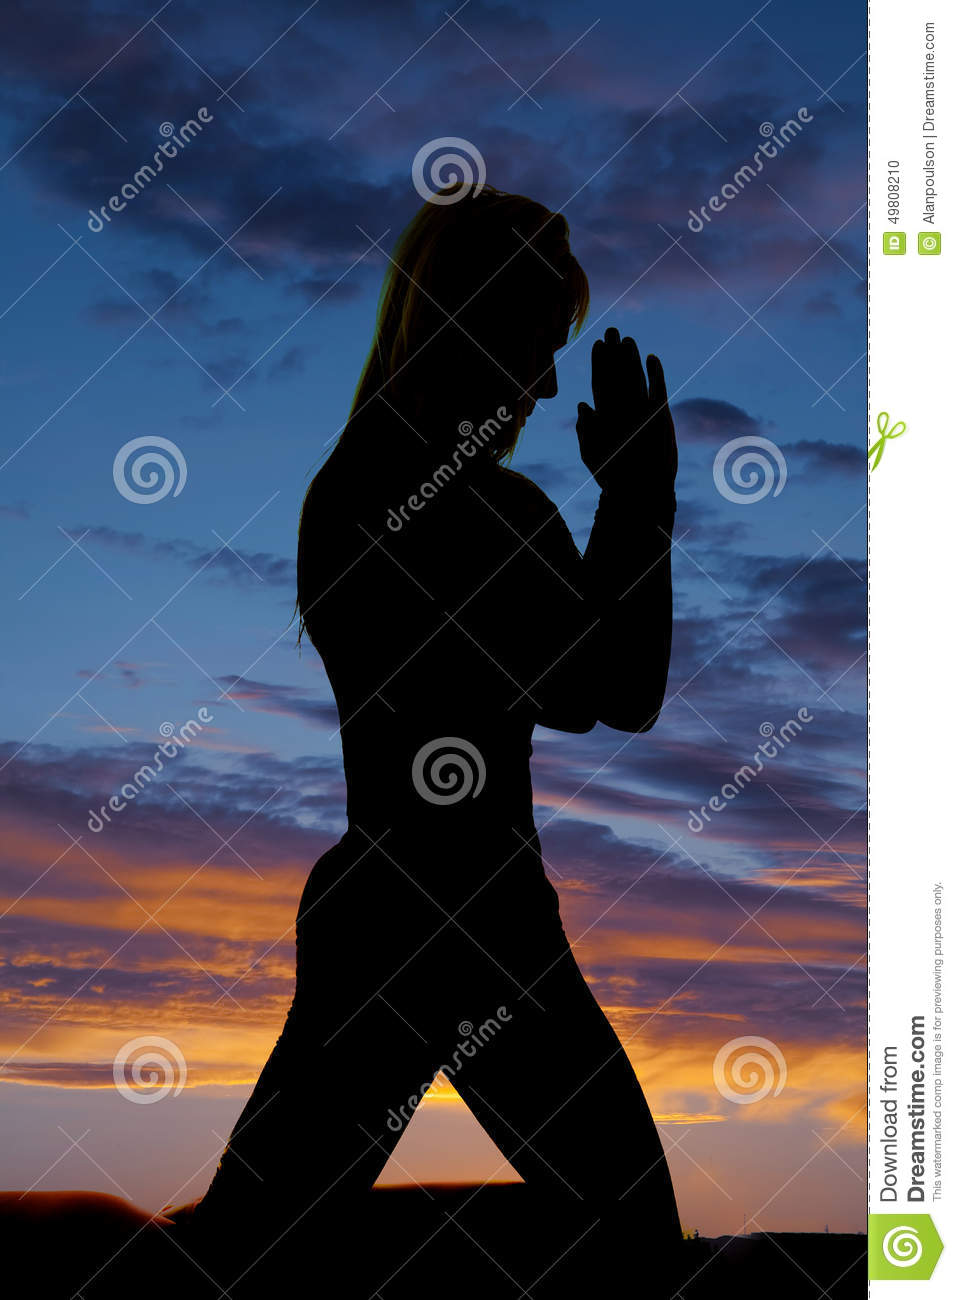 Silhouette of woman kneel and pray